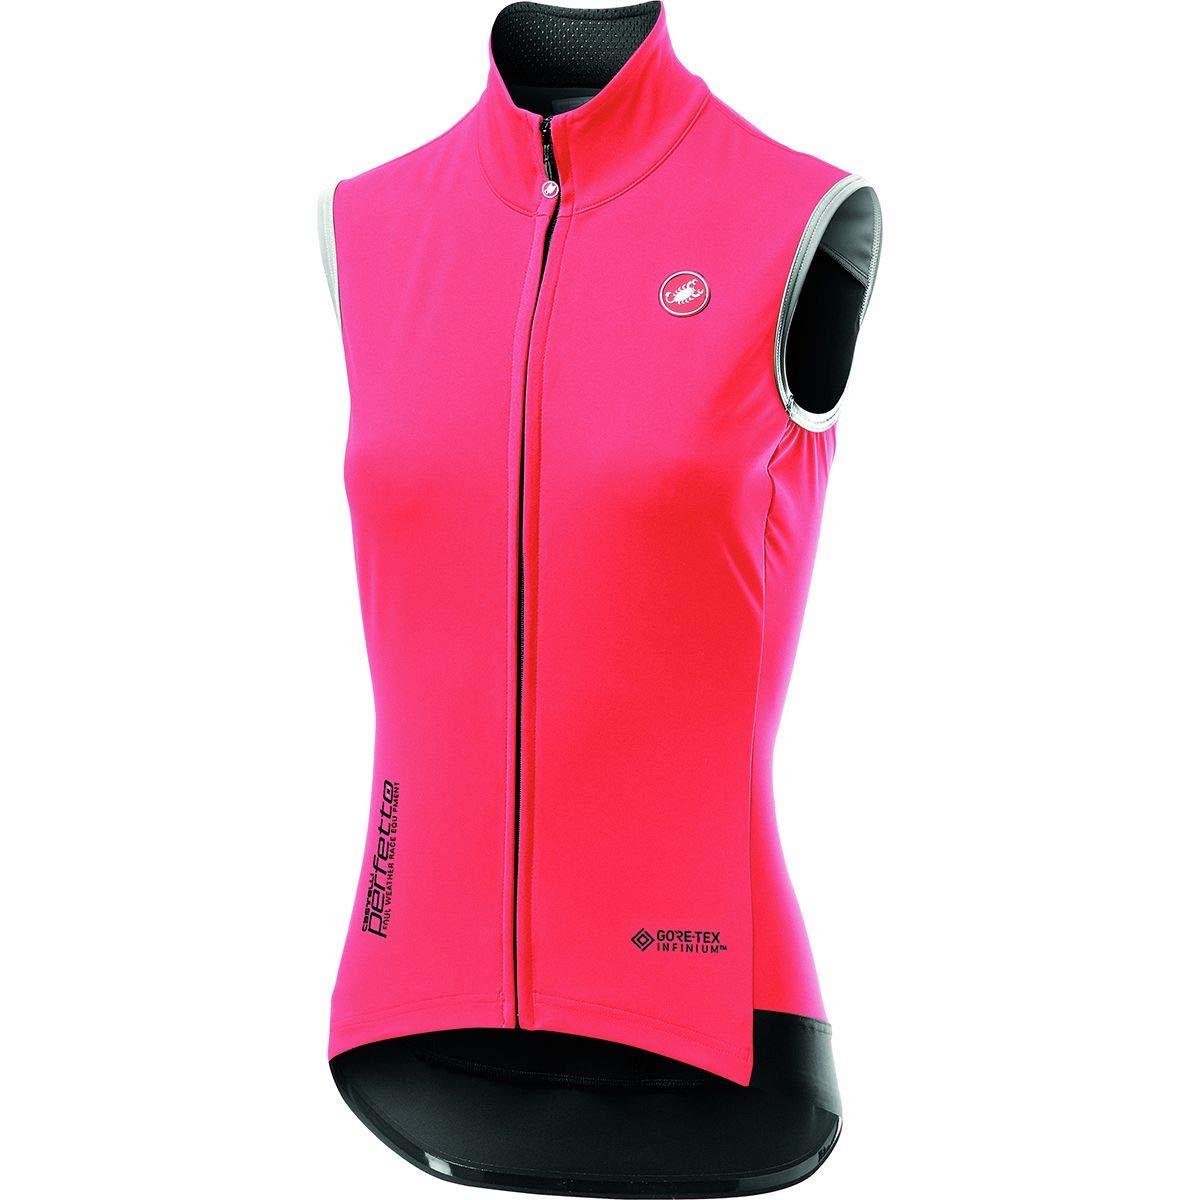 Castelli Perfetto ROS Vest - Women's Brilliant Pink, S by Castelli